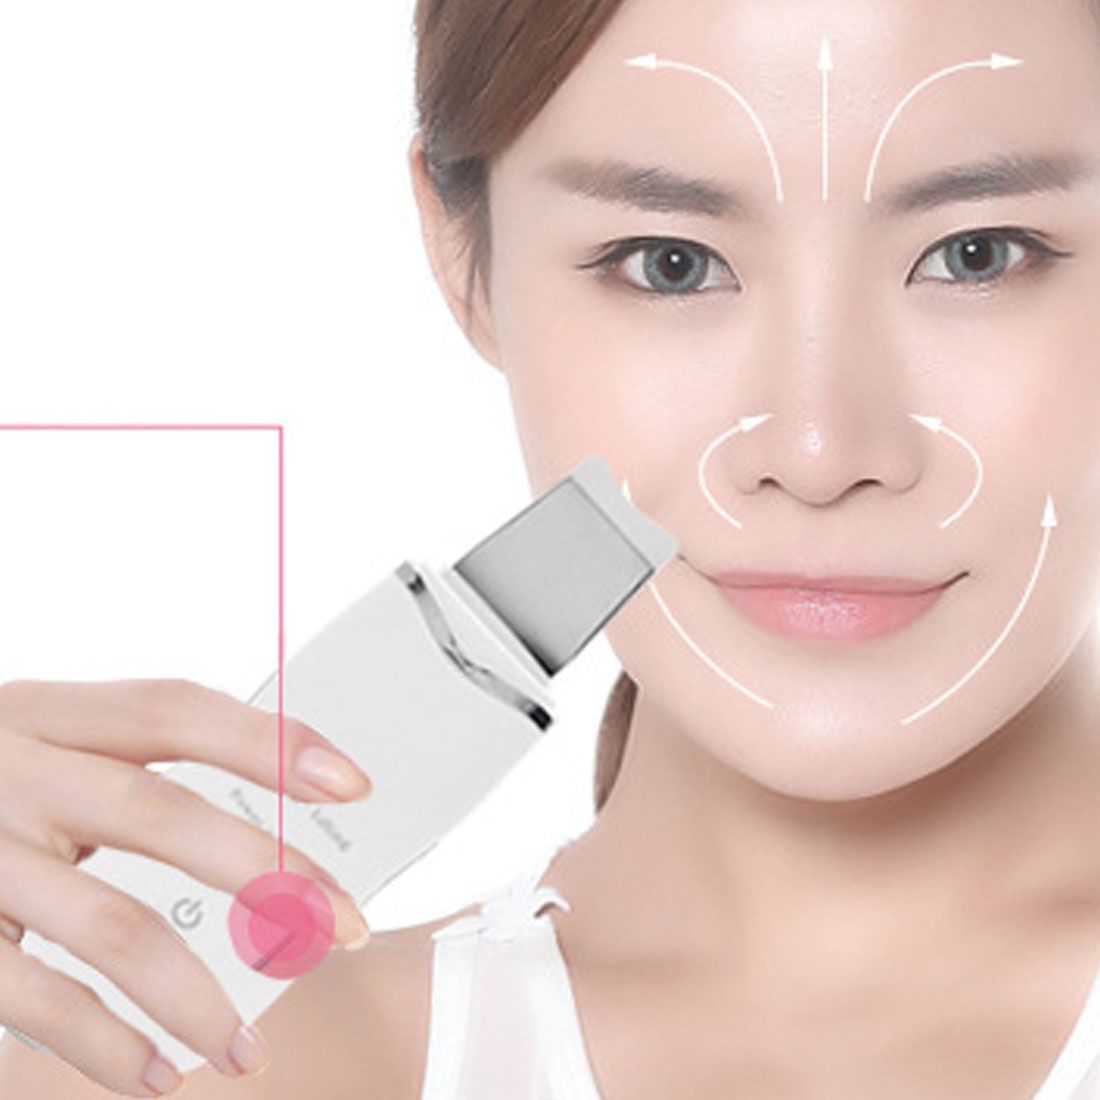 Rechargeable Ultrasonic Skin Face Scrubber Facial Purifier Vibration Peeling Removal Acne Exfoliating Pore Cleaner Tools HotRechargeable Ultrasonic Skin Face Scrubber Facial Purifier Vibration Peeling Removal Acne Exfoliating Pore Cleaner Tools Hot